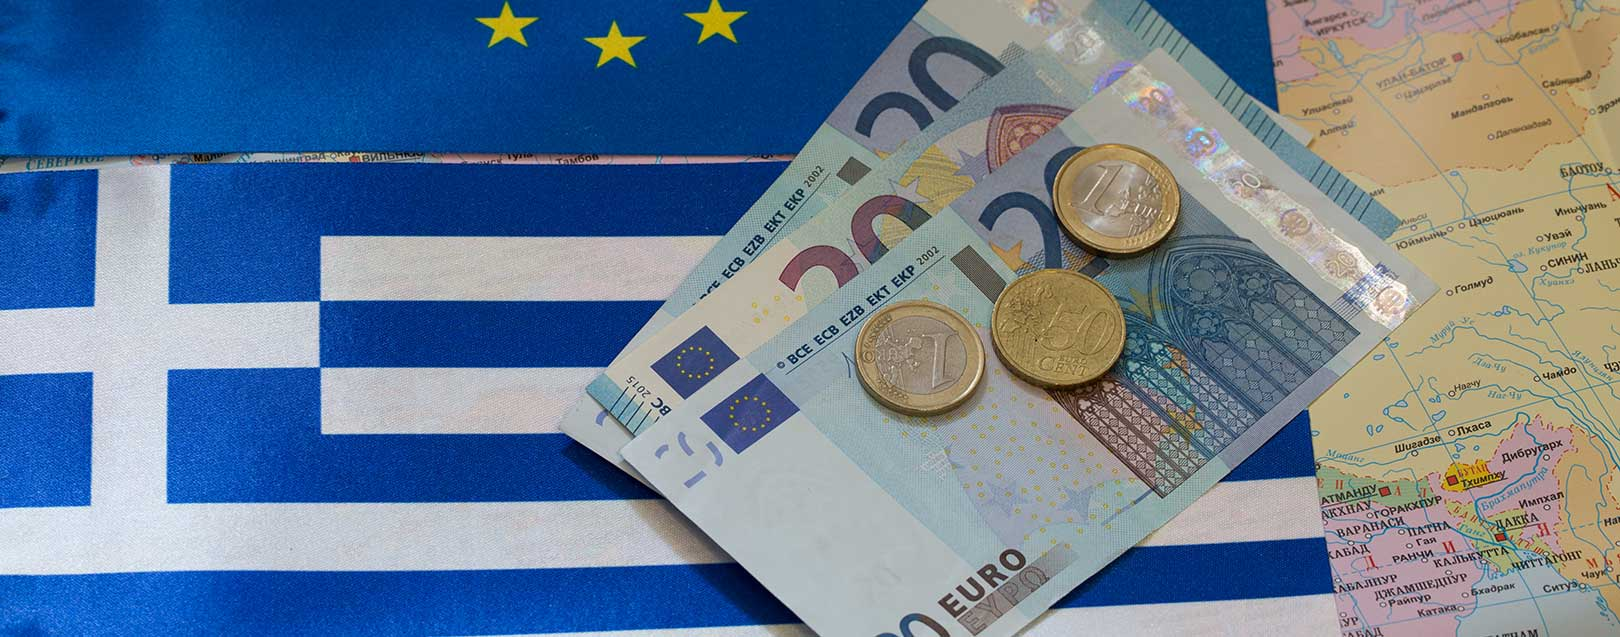 Stalemated bailout negotiations: Greece's future hangs in balance